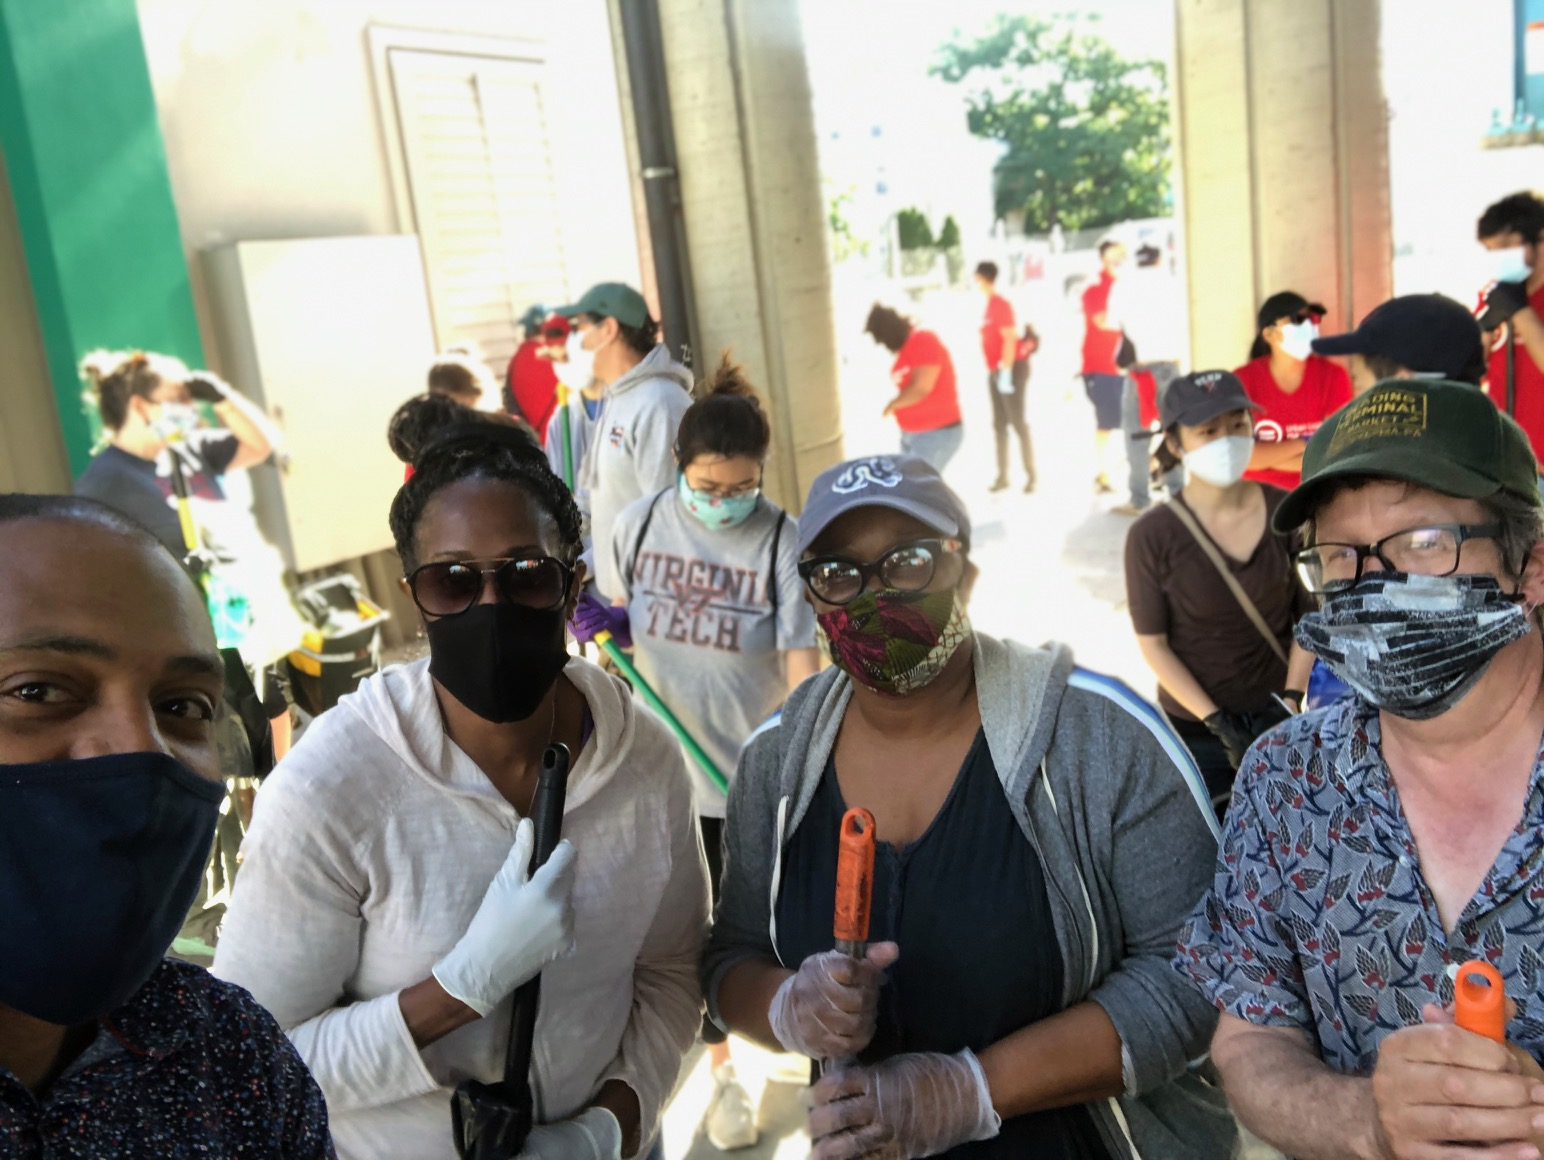 From left to right: Allen Riddick, Una Massenburg, Charlene Rice and Bo Solomon volunteering to clean the area near 52nd and Market streets on June 13.